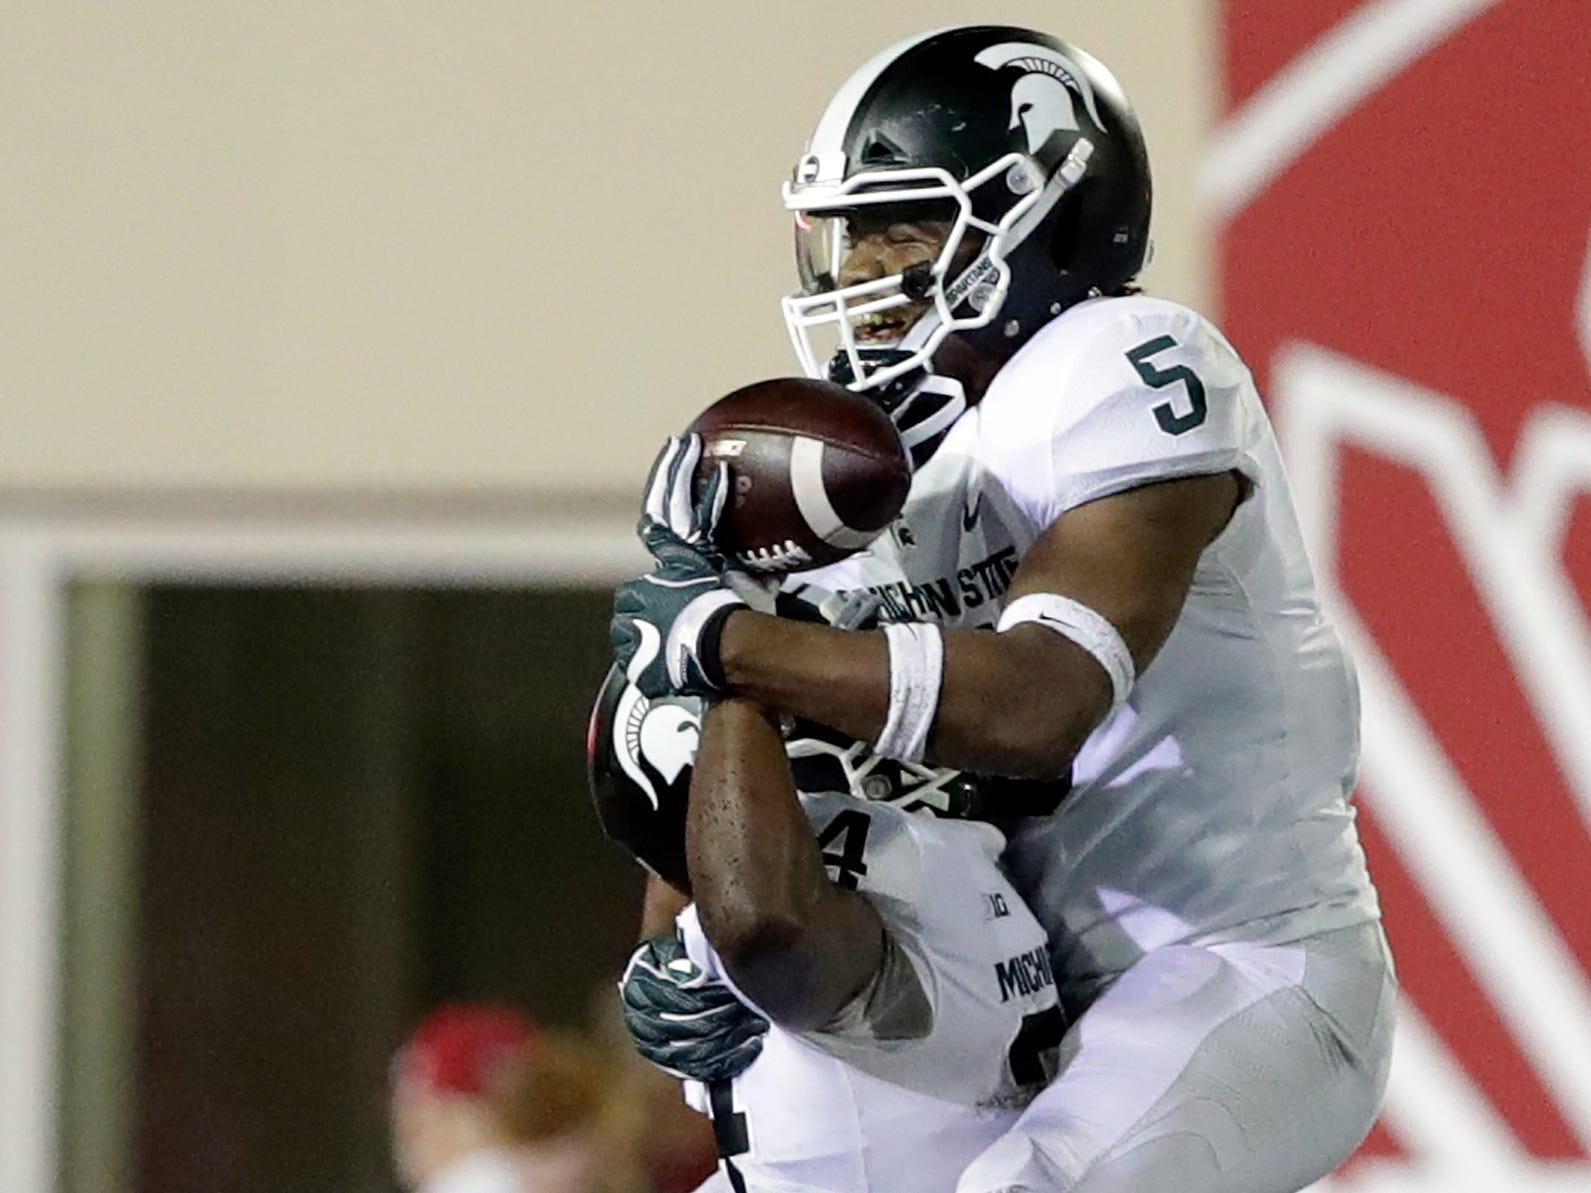 Michigan State's Antjuan Simmons (34) and Andrew Dowell celebrate after Simmons recovered a fumble during the second half of an NCAA college football game against Indiana, Saturday, Sept. 22, 2018, in Bloomington, Ind. Michigan State won 35-21.